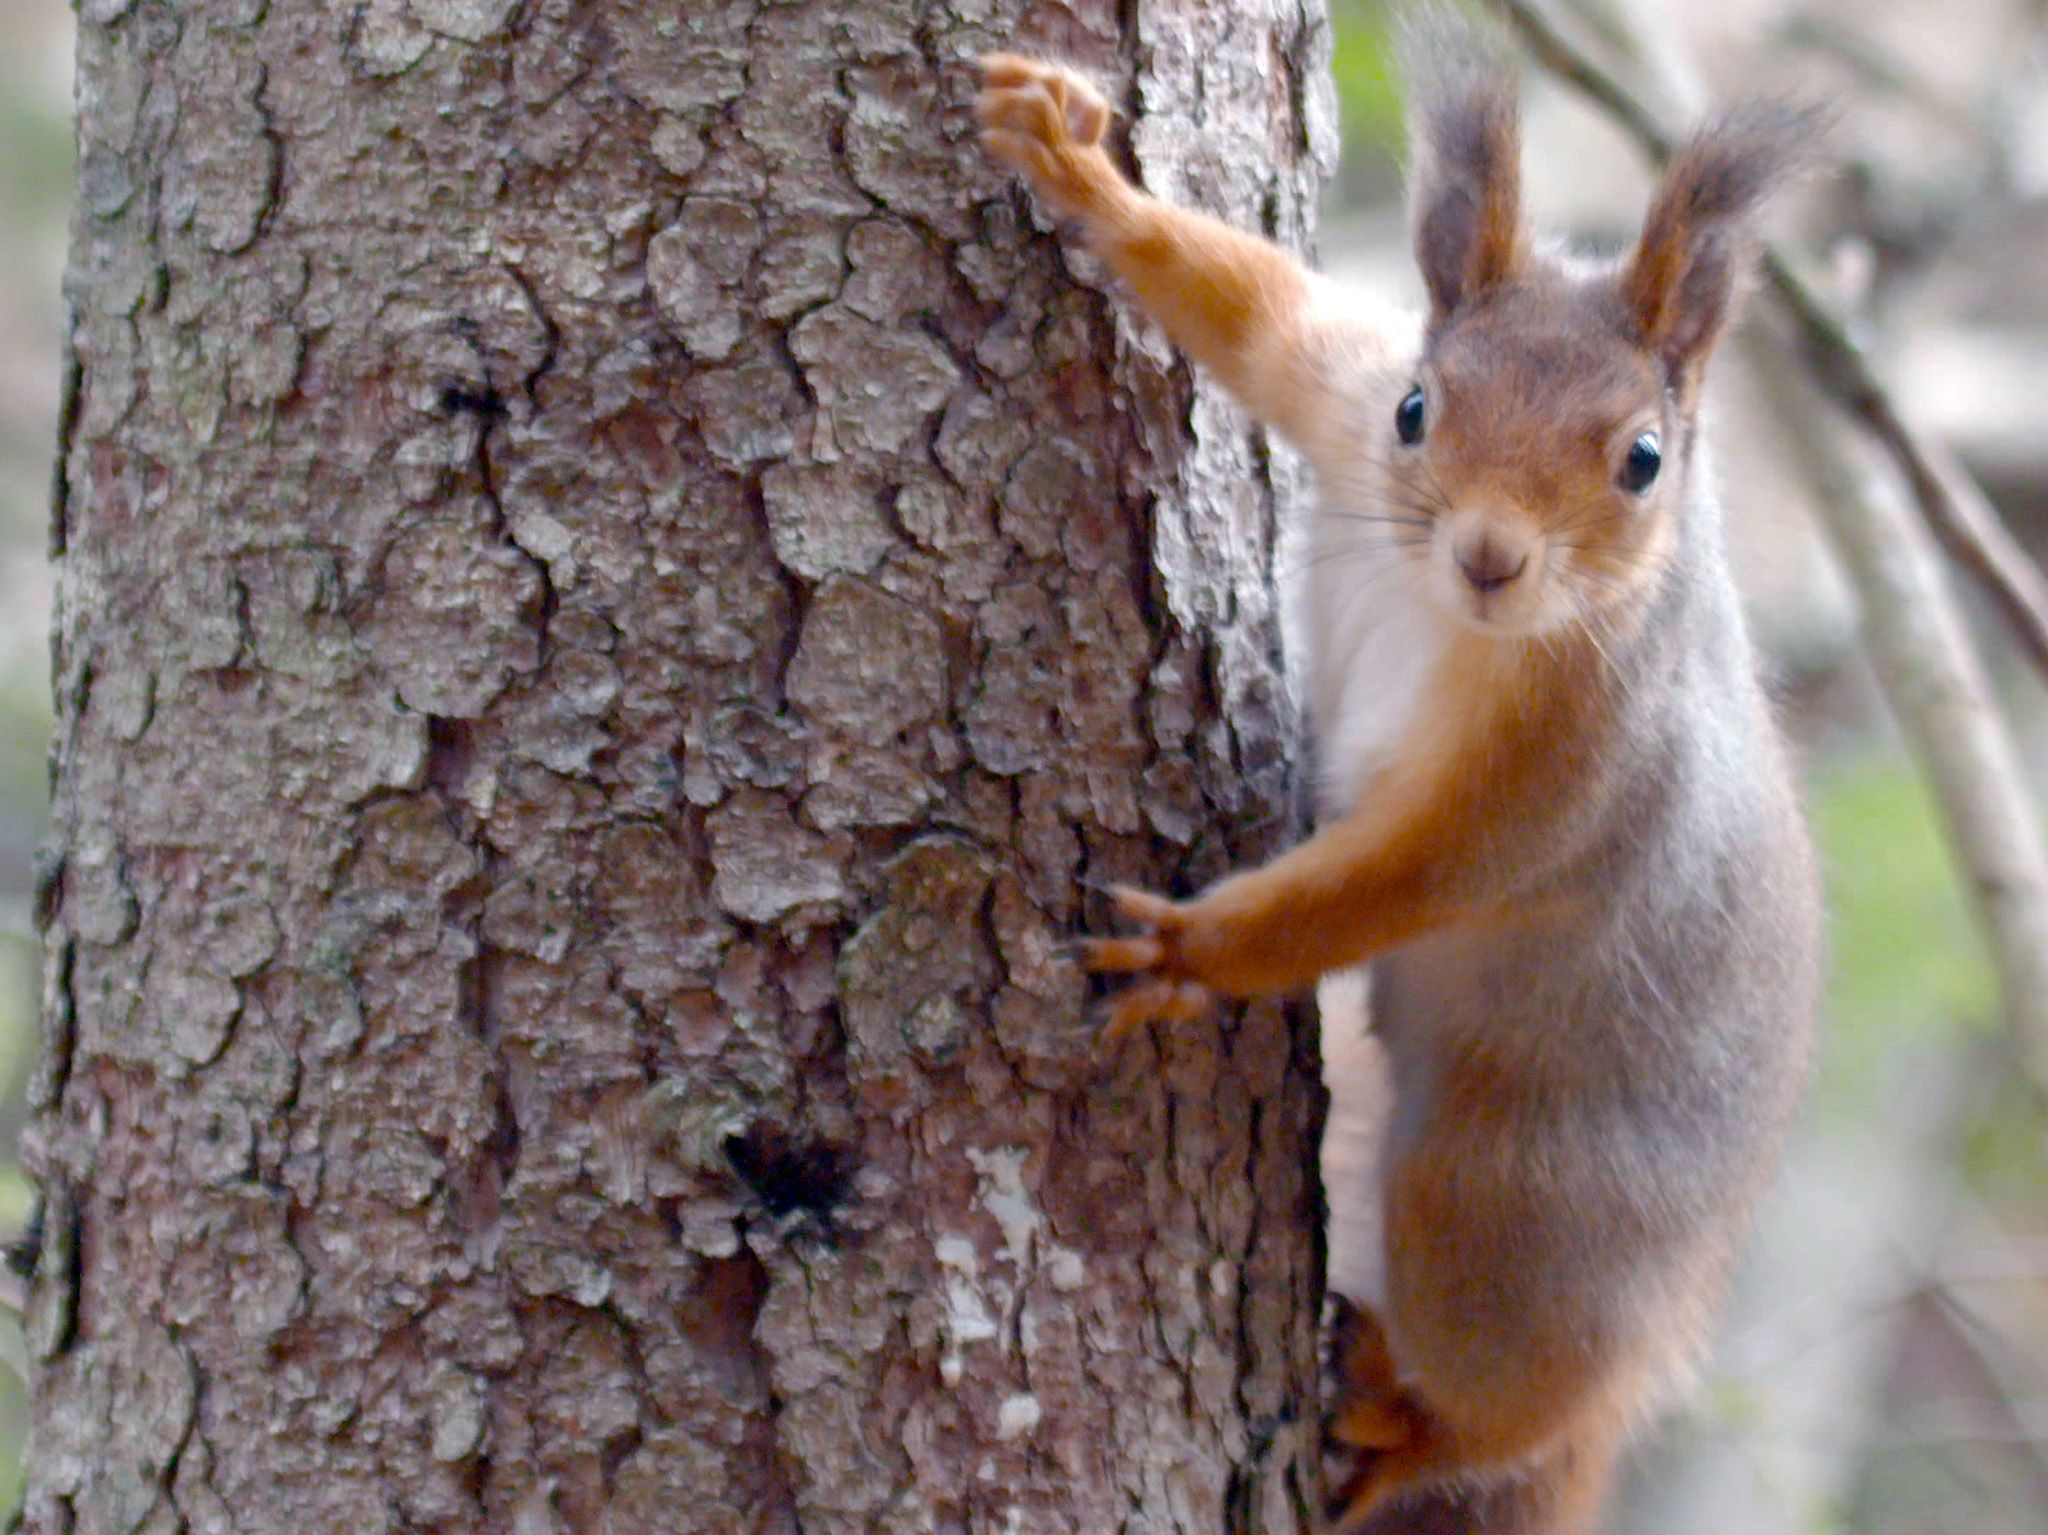 Squirrel climbing a tree. This image is from Wild Scandinavia. [Photo of the day - September 2020]